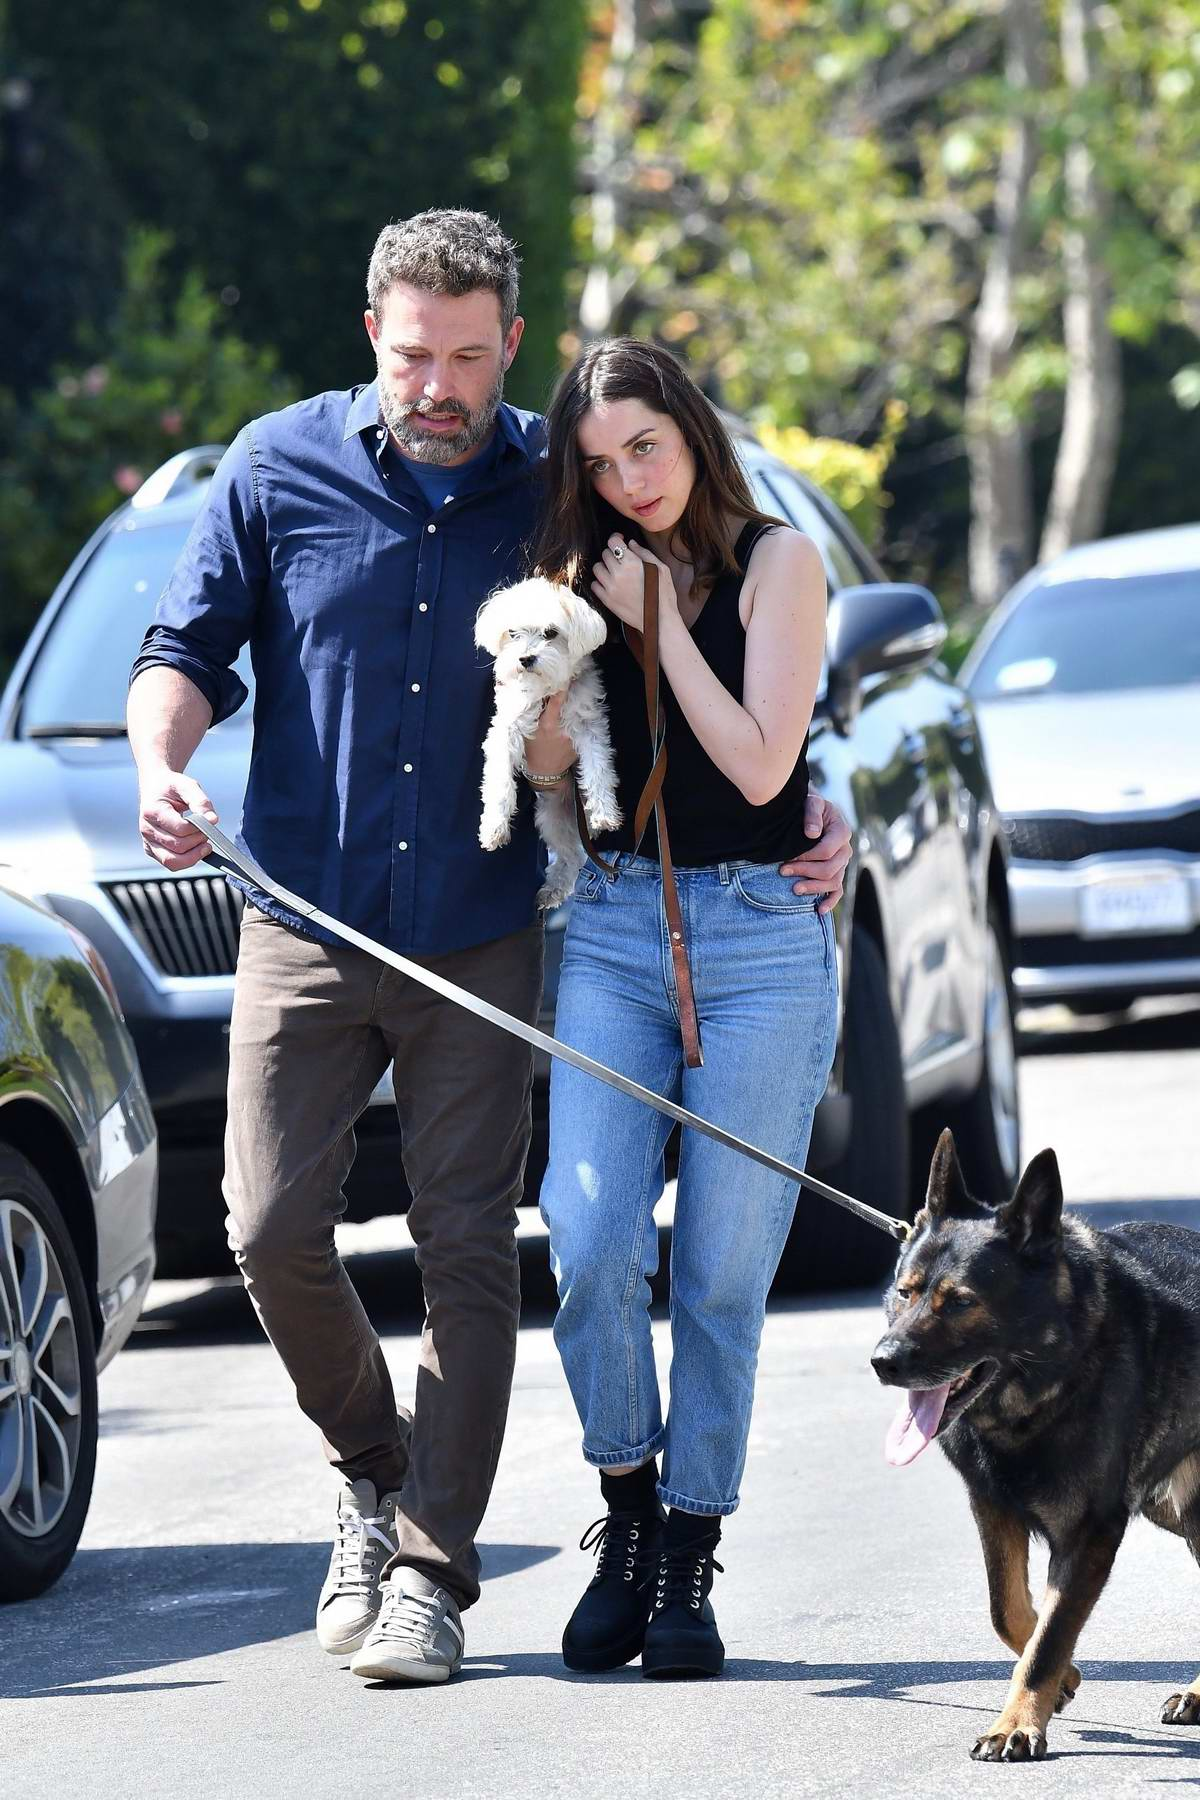 Ana de Armas and Ben Affleck pack on the PDA while out for a morning stroll with their dogs in Brentwood, California